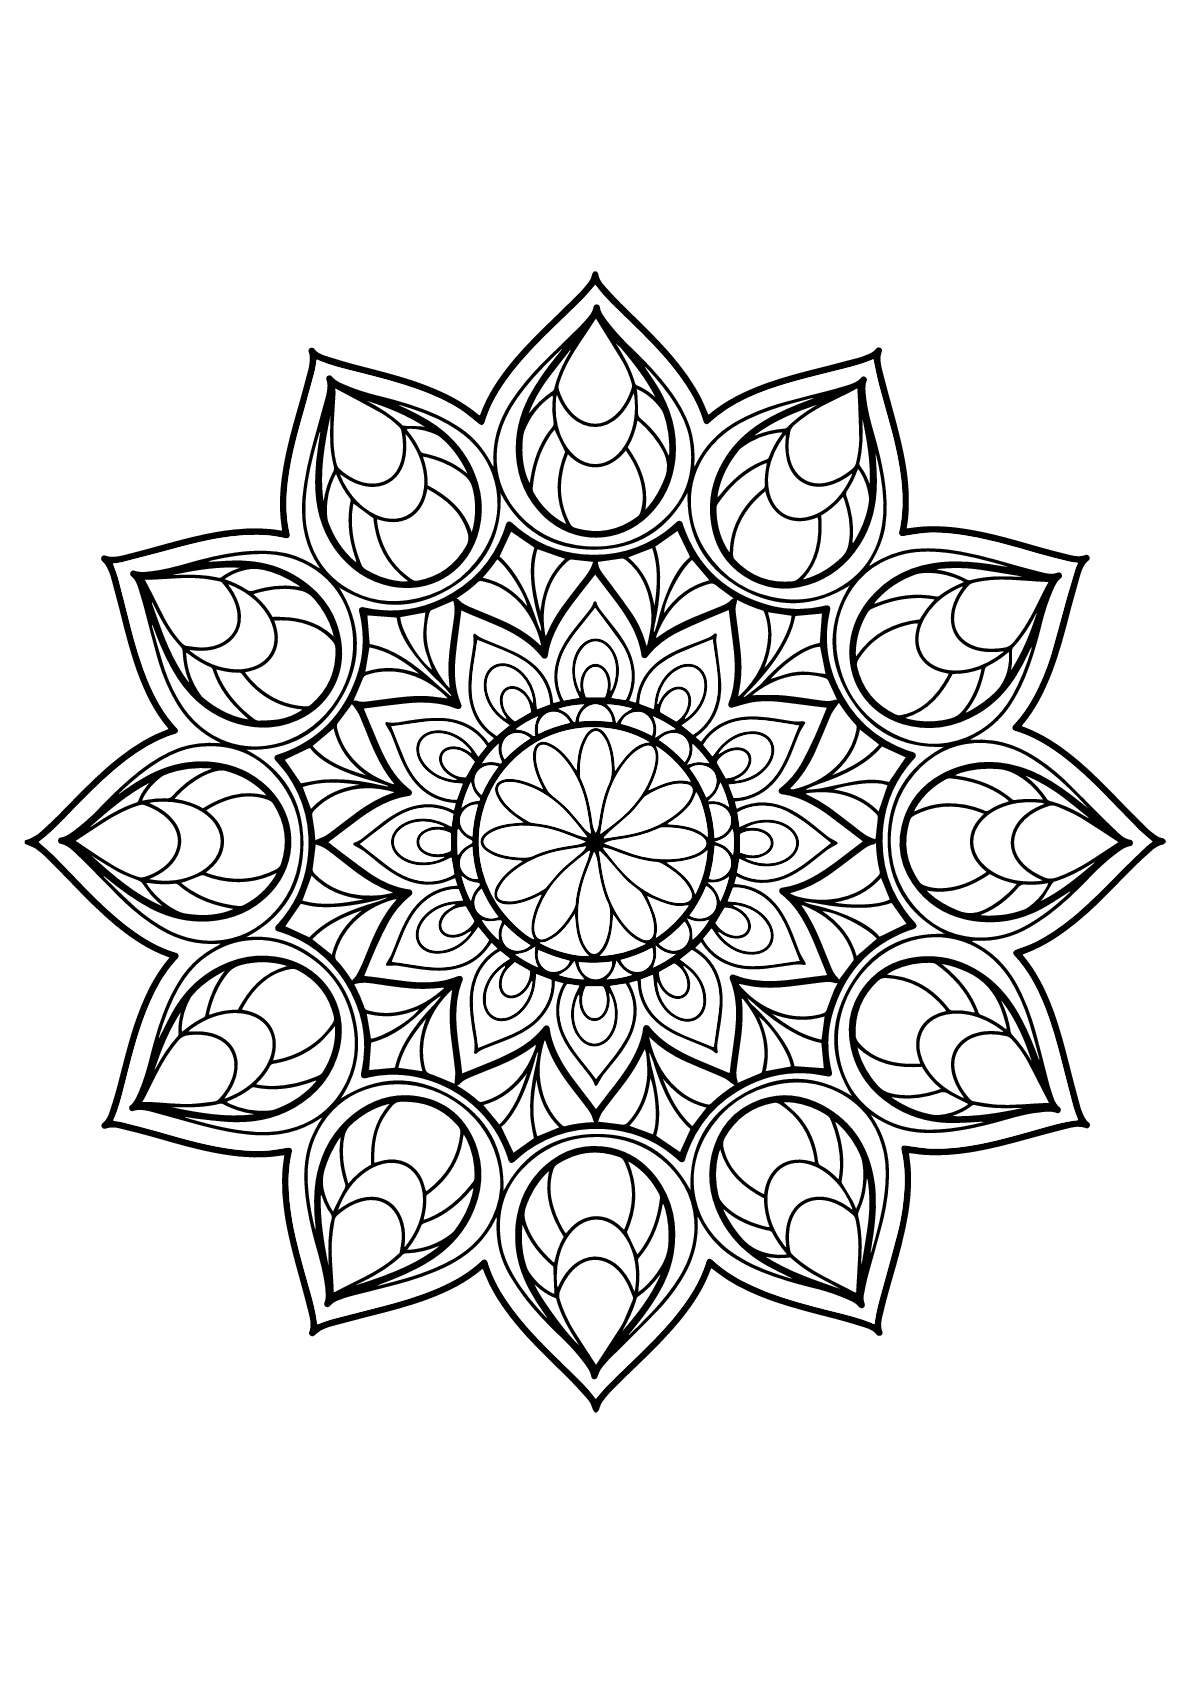 free printable mandalas coloring pages adults get this free mandala coloring pages for adults 42893 adults printable pages coloring free mandalas